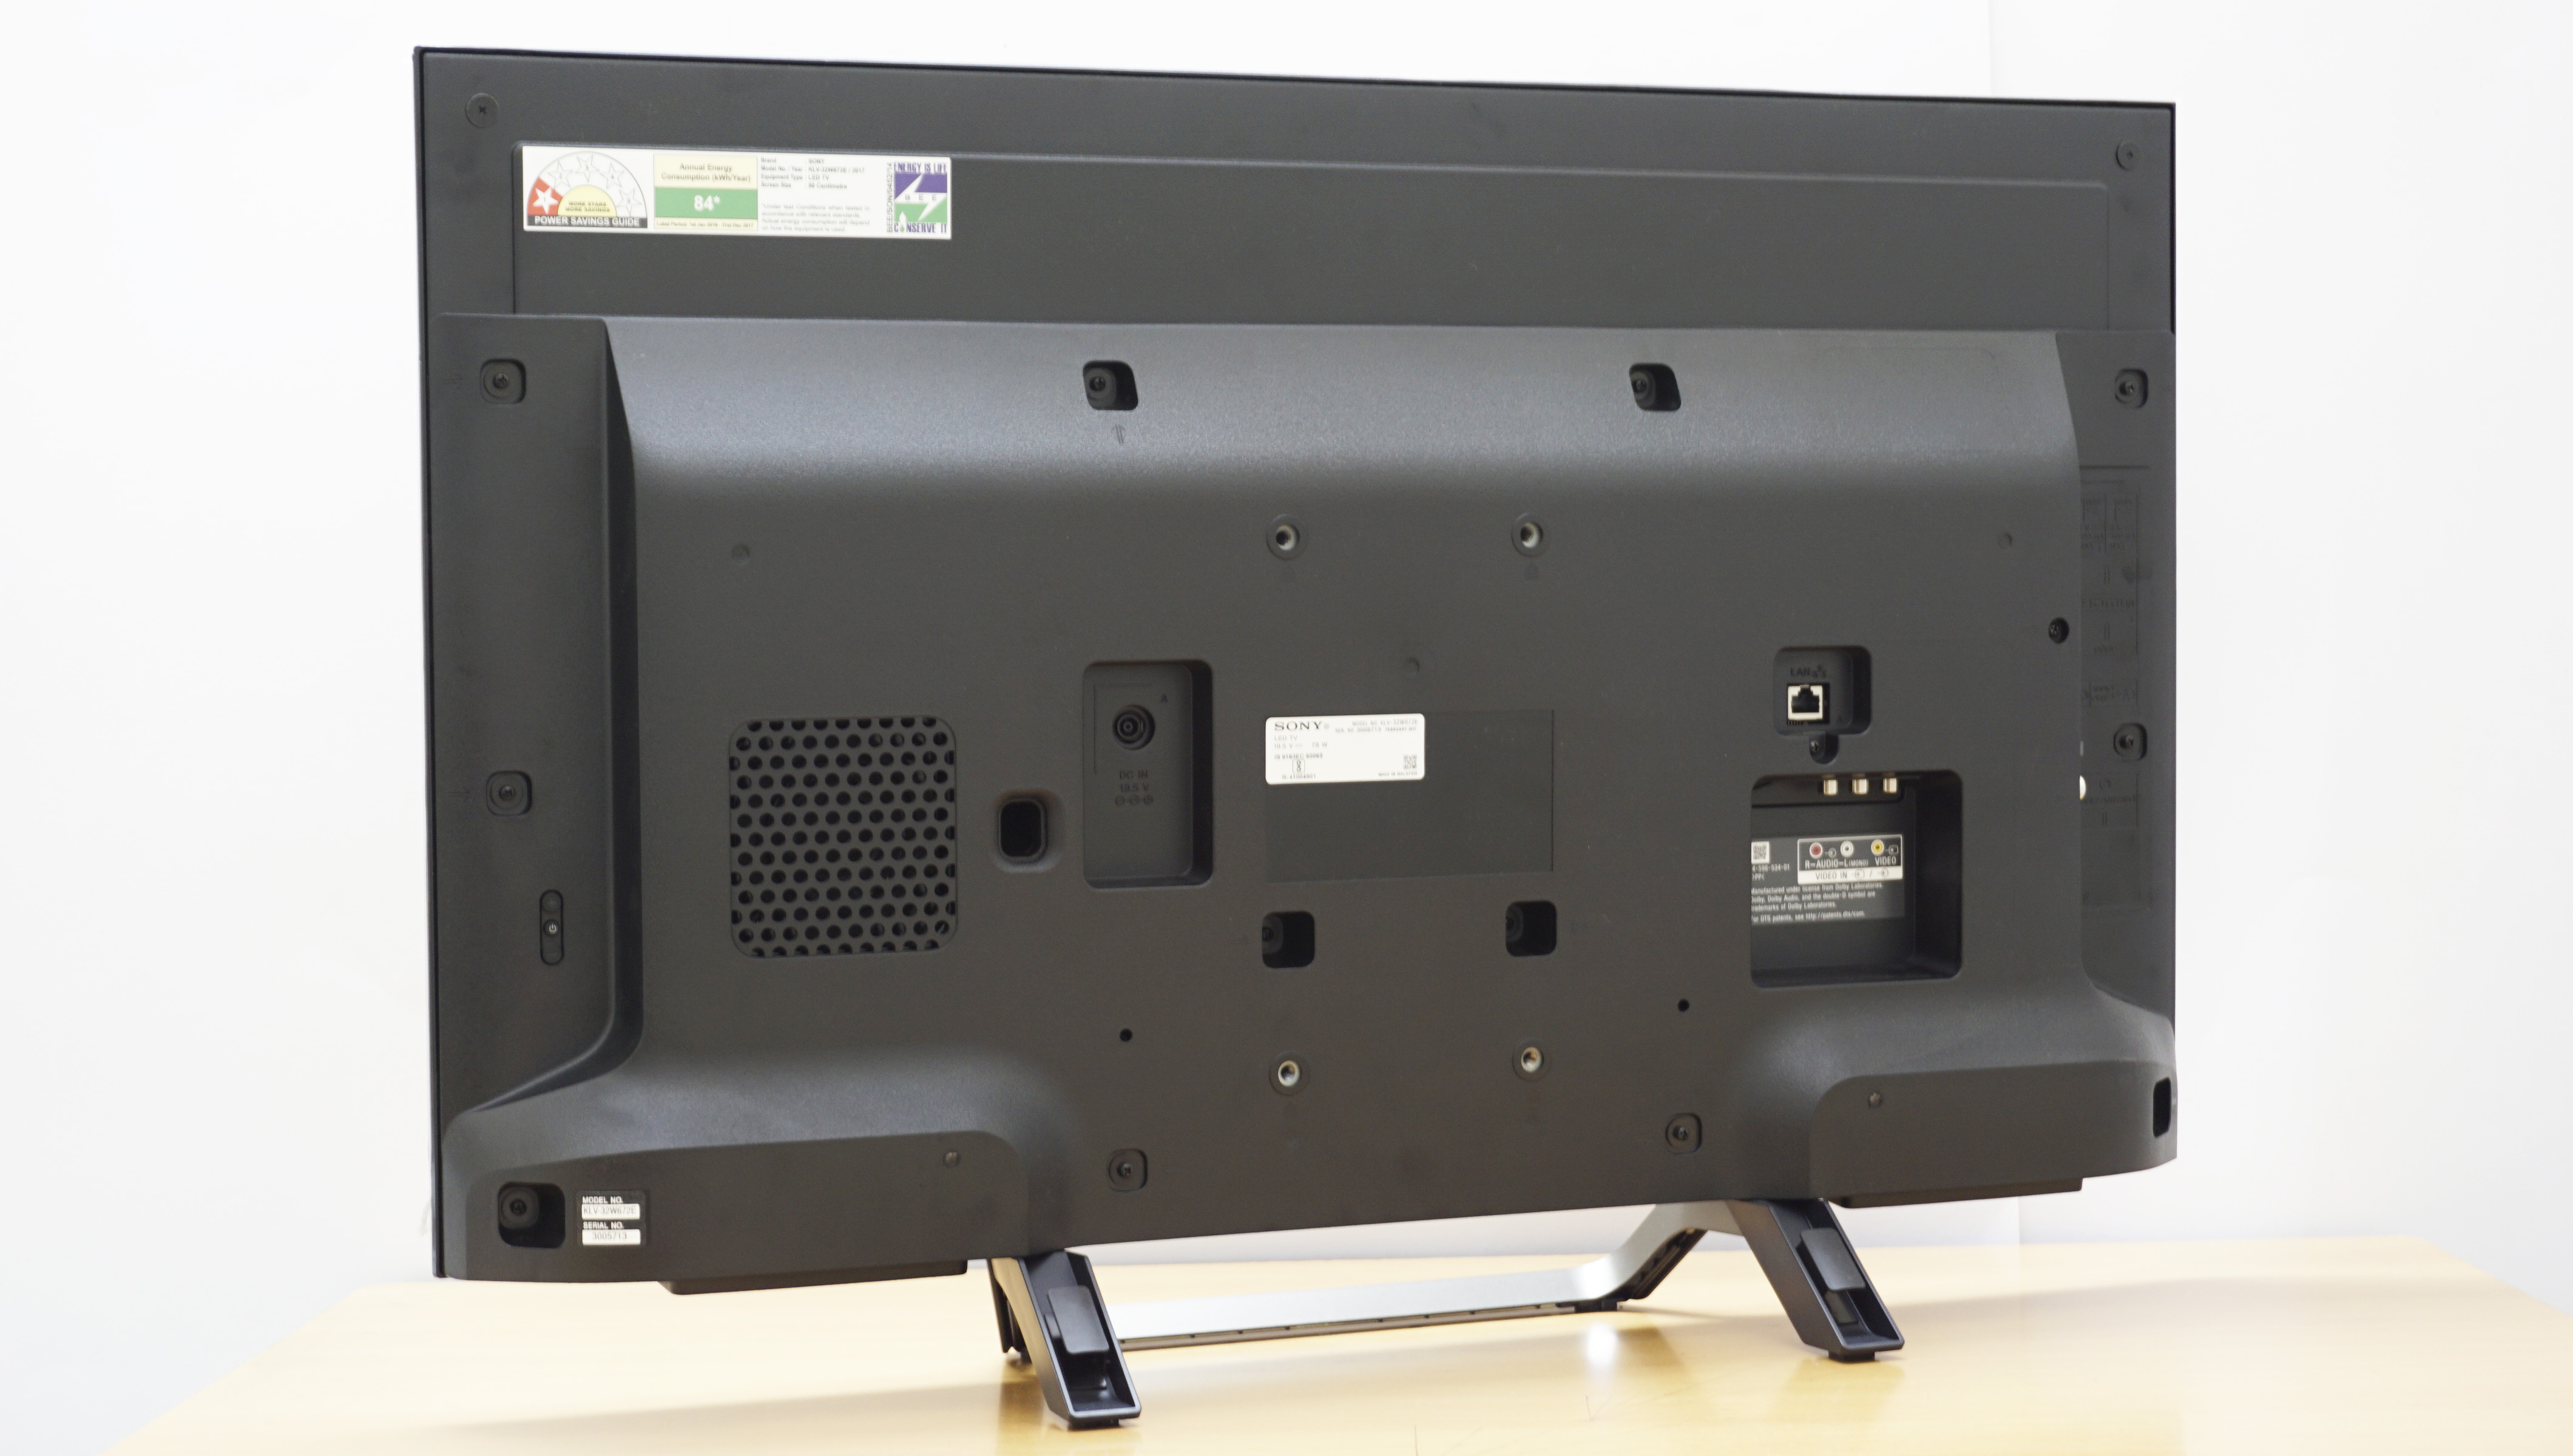 Sony W672e Review Klv 40w672e 49w672e 32w672e Tvnama Wall Mount Tv Wiring Diagram The Back Of Looks Bulky With A Reflective Plastic Finish Input Ports At Will Be Hard To Reach If Is Mounted